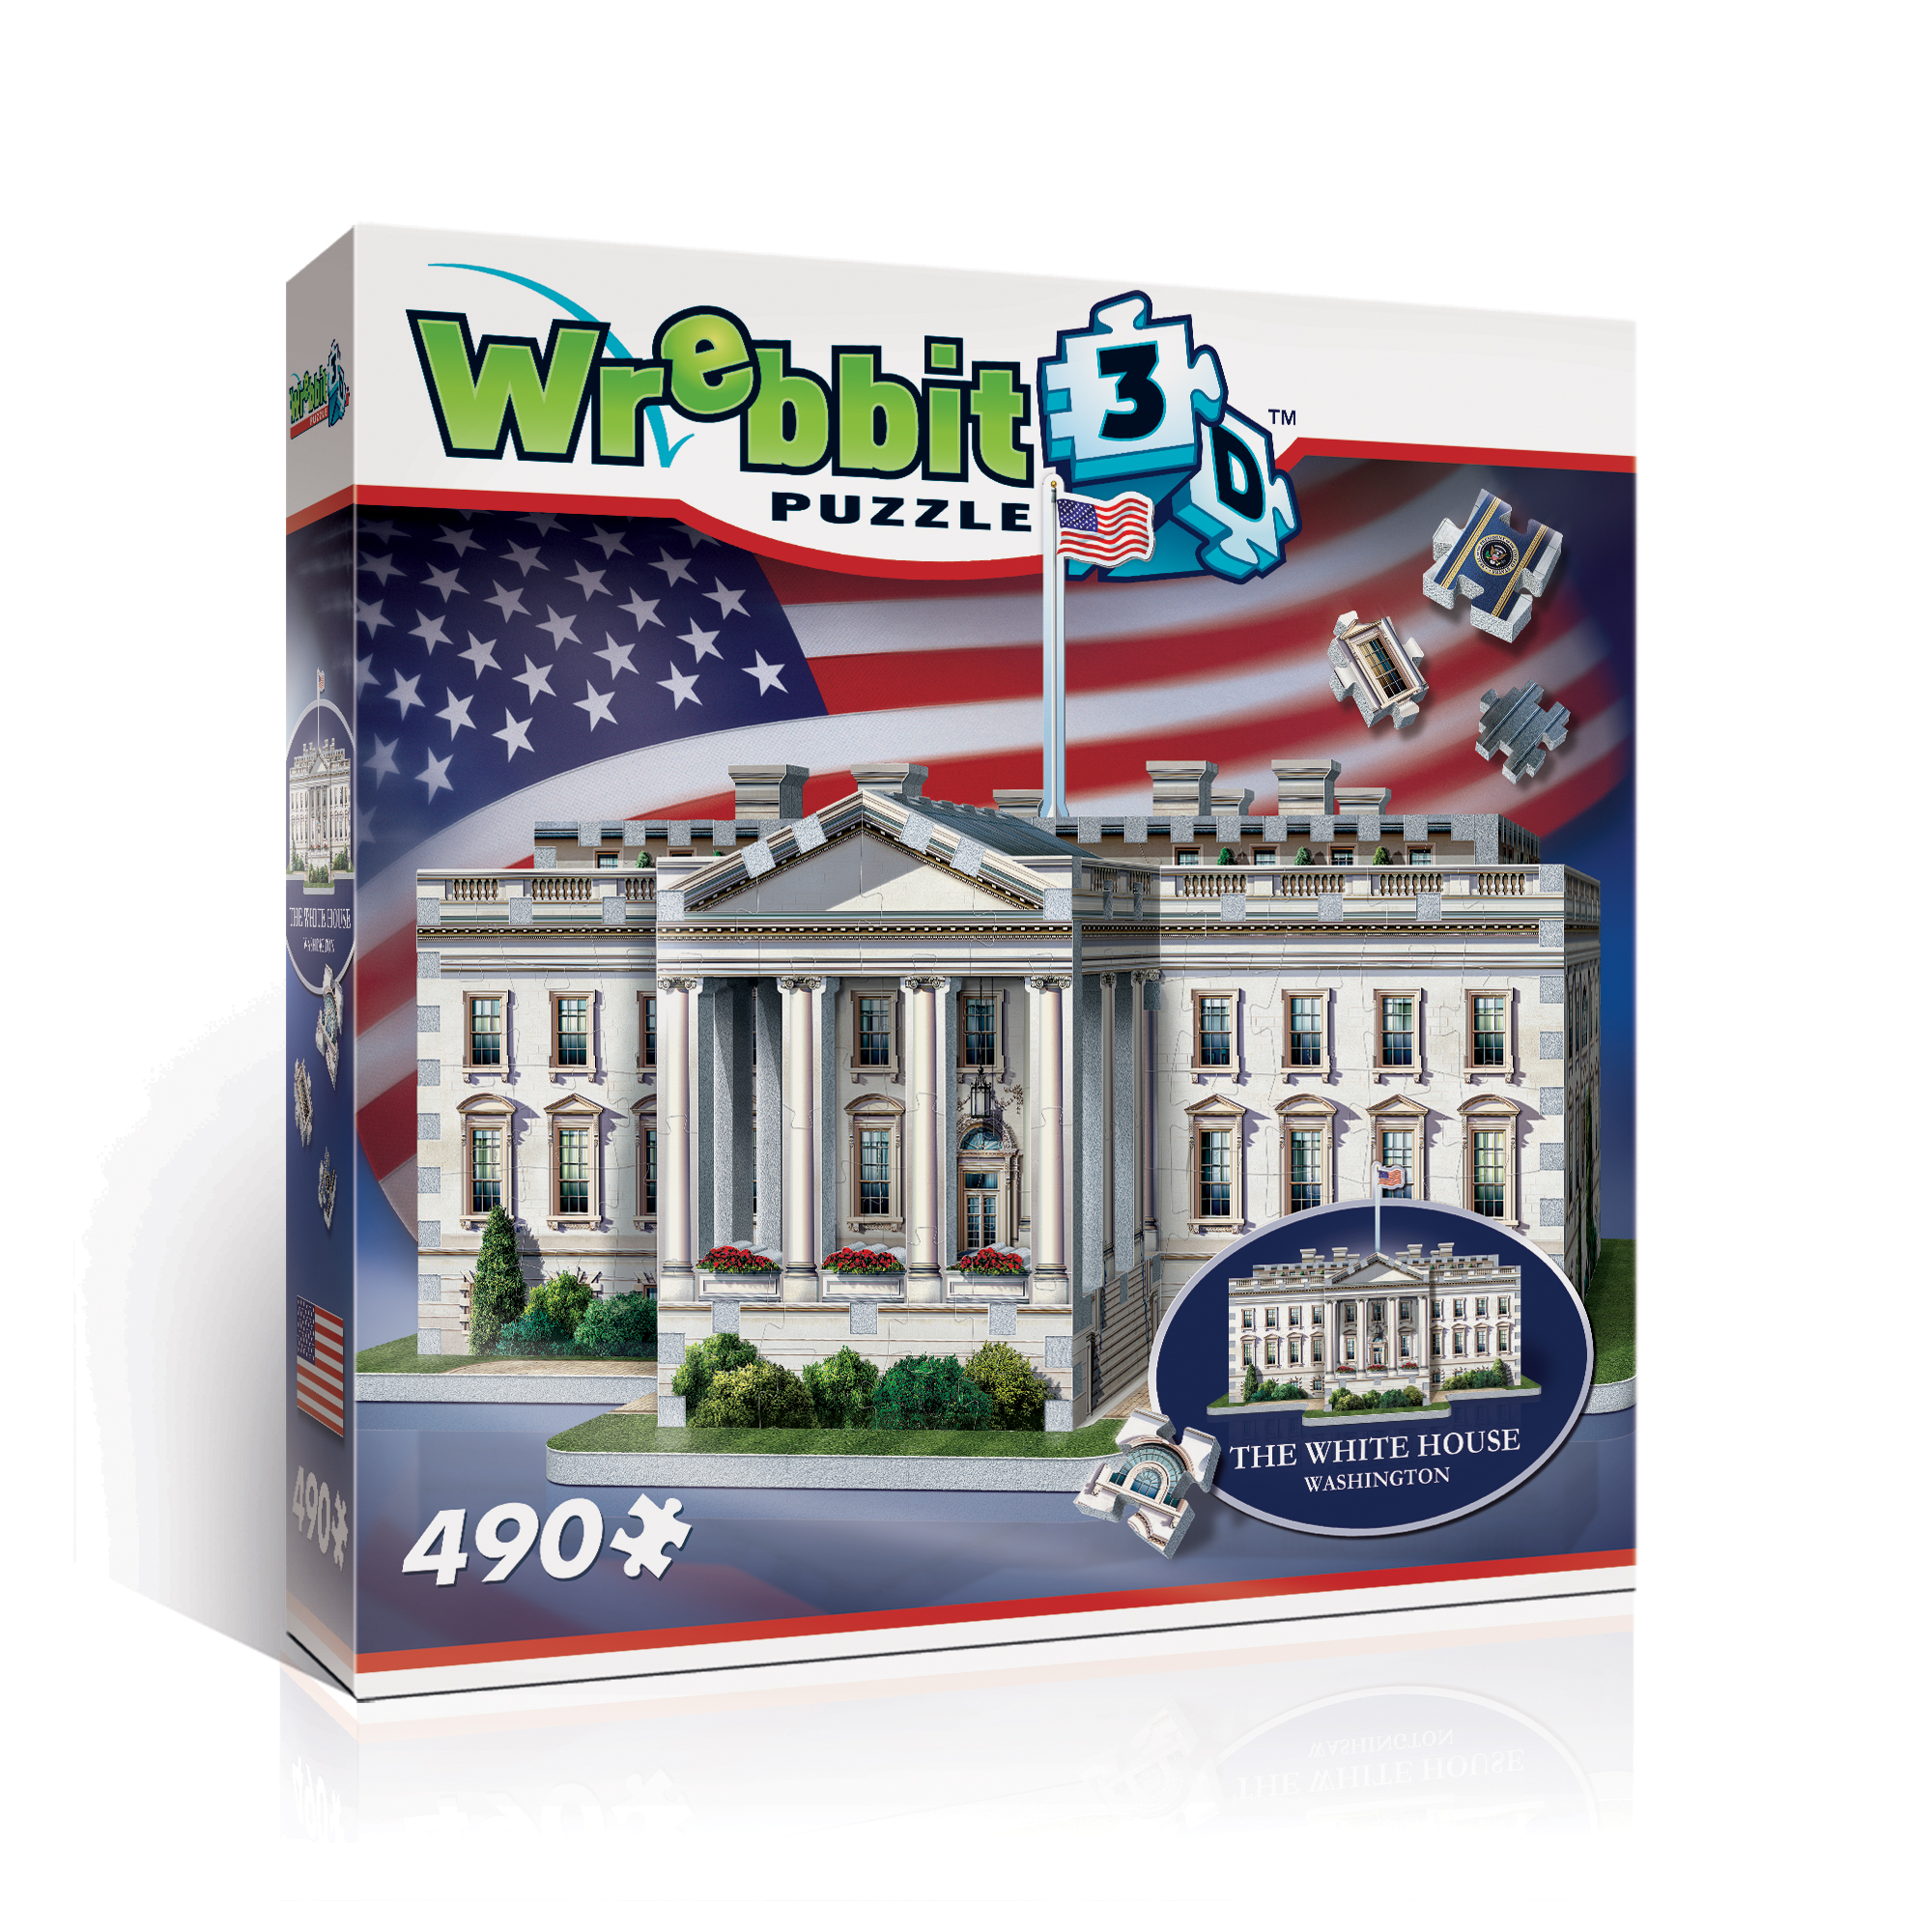 Wrebbit - The White House 490 Piece 3D Puzzle